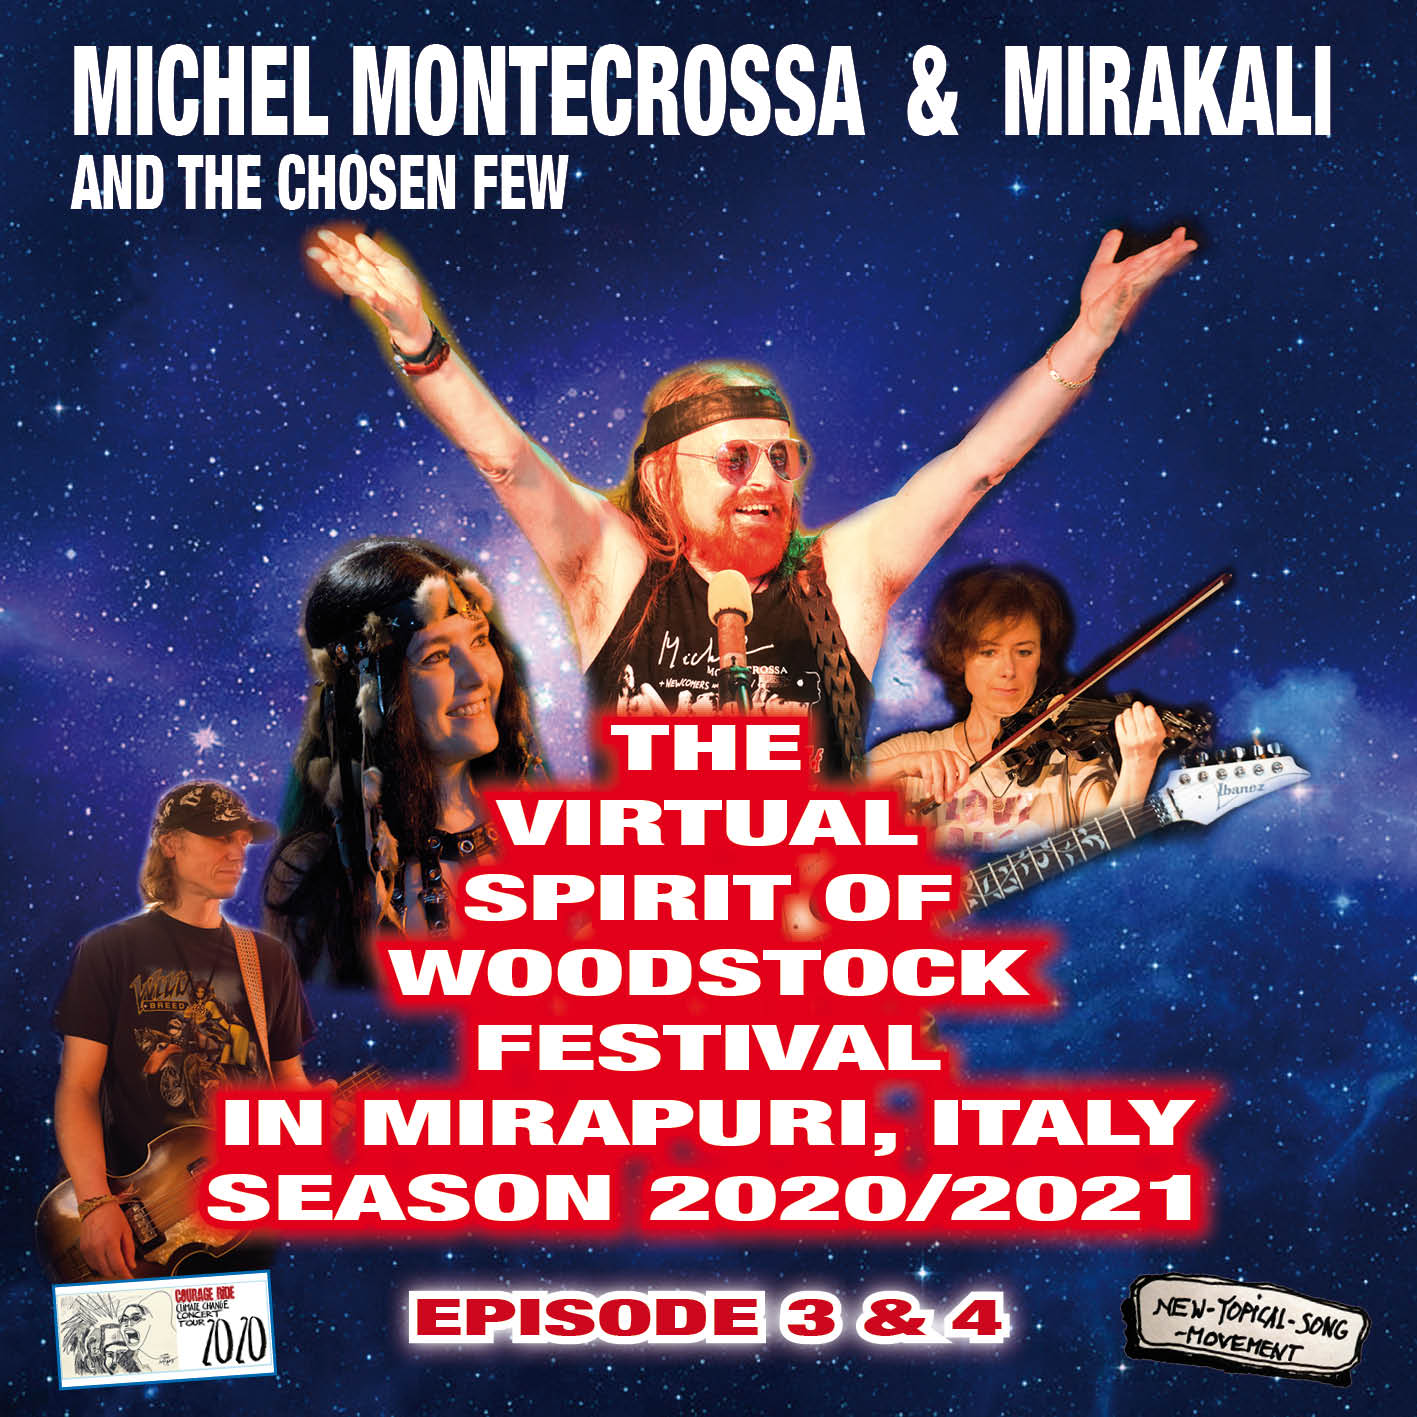 The Virtual Spirit of Woodstock Festival in Mirapuri, Italy Season 2020/2021 Episodes 3 & 4